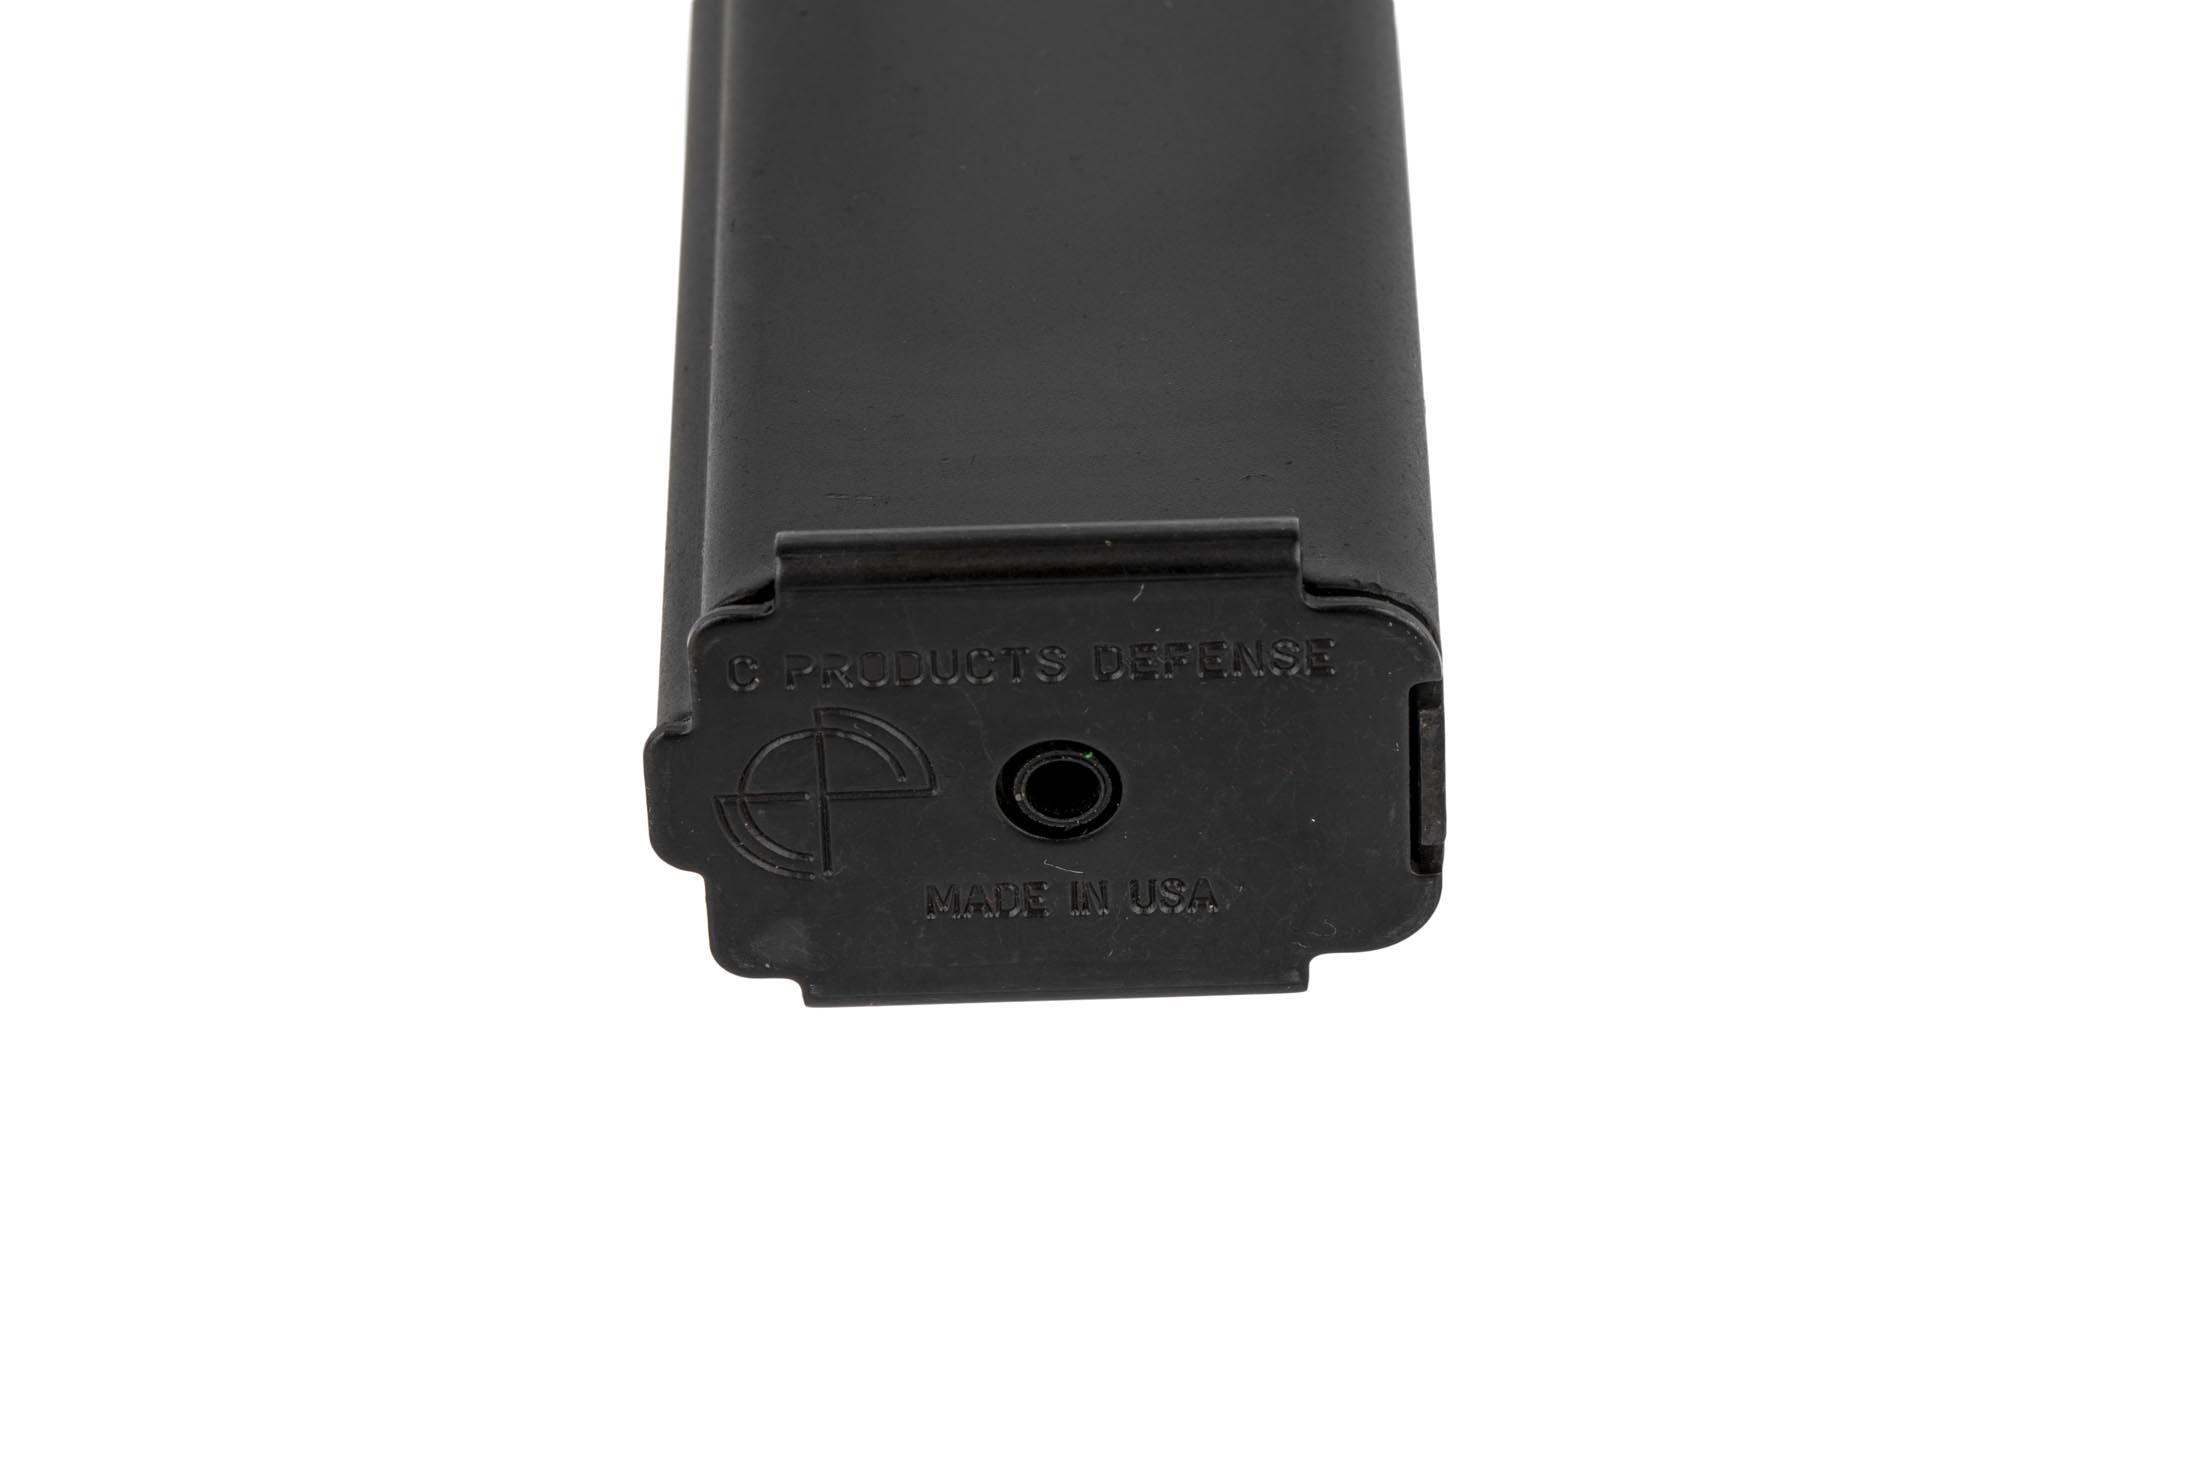 C Products 9x19mm 32-round stainless Colt-Style magazine features a stamped floor plate for easy disassembly